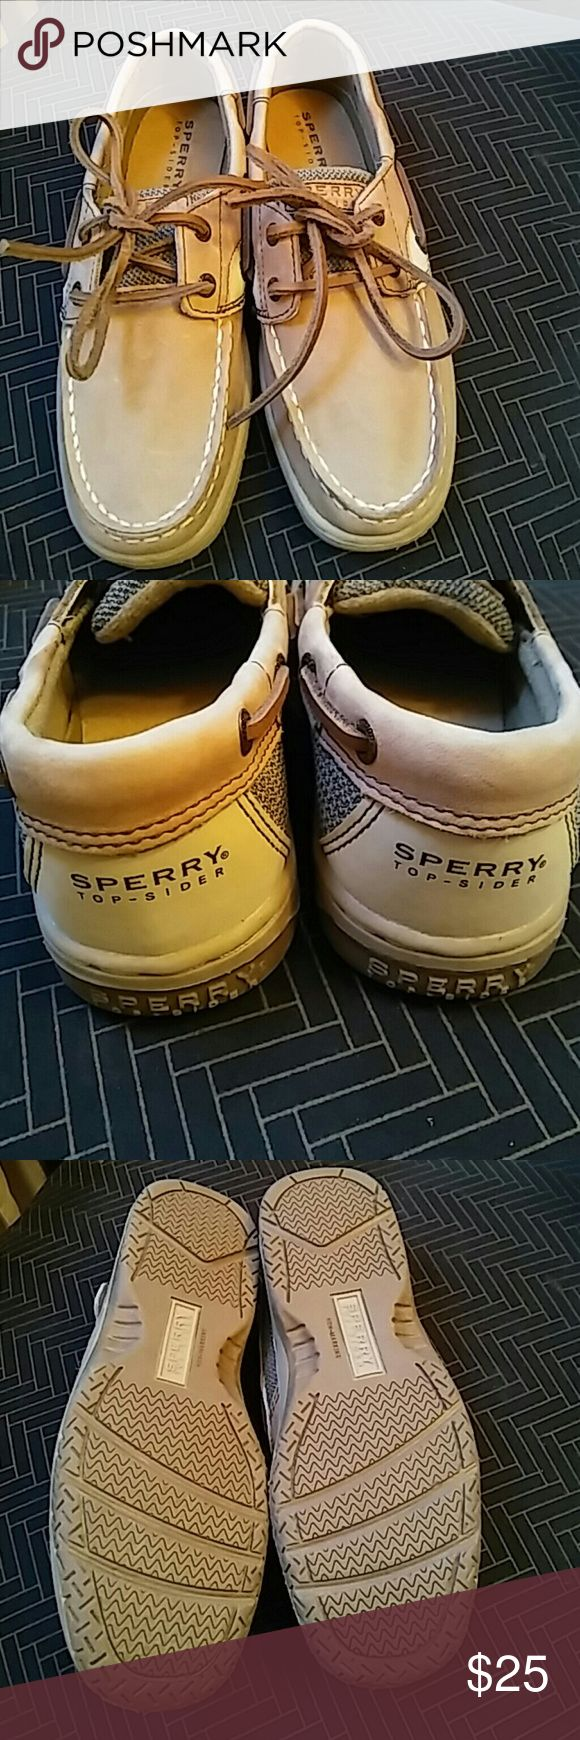 Girls sz 1.5m sperrys top-spider new without box Girls sz 1.5m sperrys top-spider new without box, leather upper, tan colored, (YG19186).  Excellent condition. Message for questions. I take offers.. Sperry Top-Sider Shoes